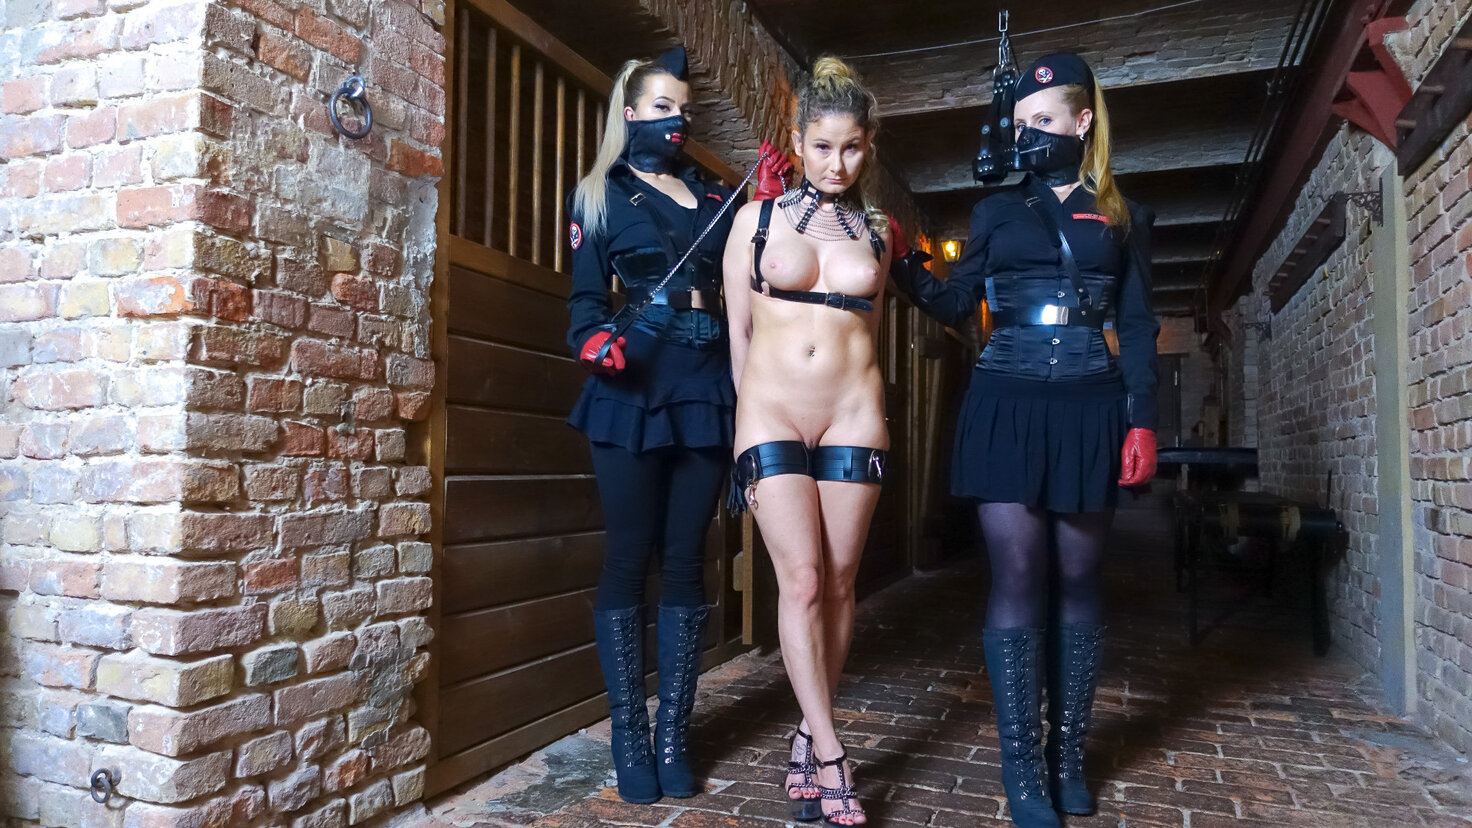 Hot German feet puppets get tortured by ominous Paula Rowe in BDSM action